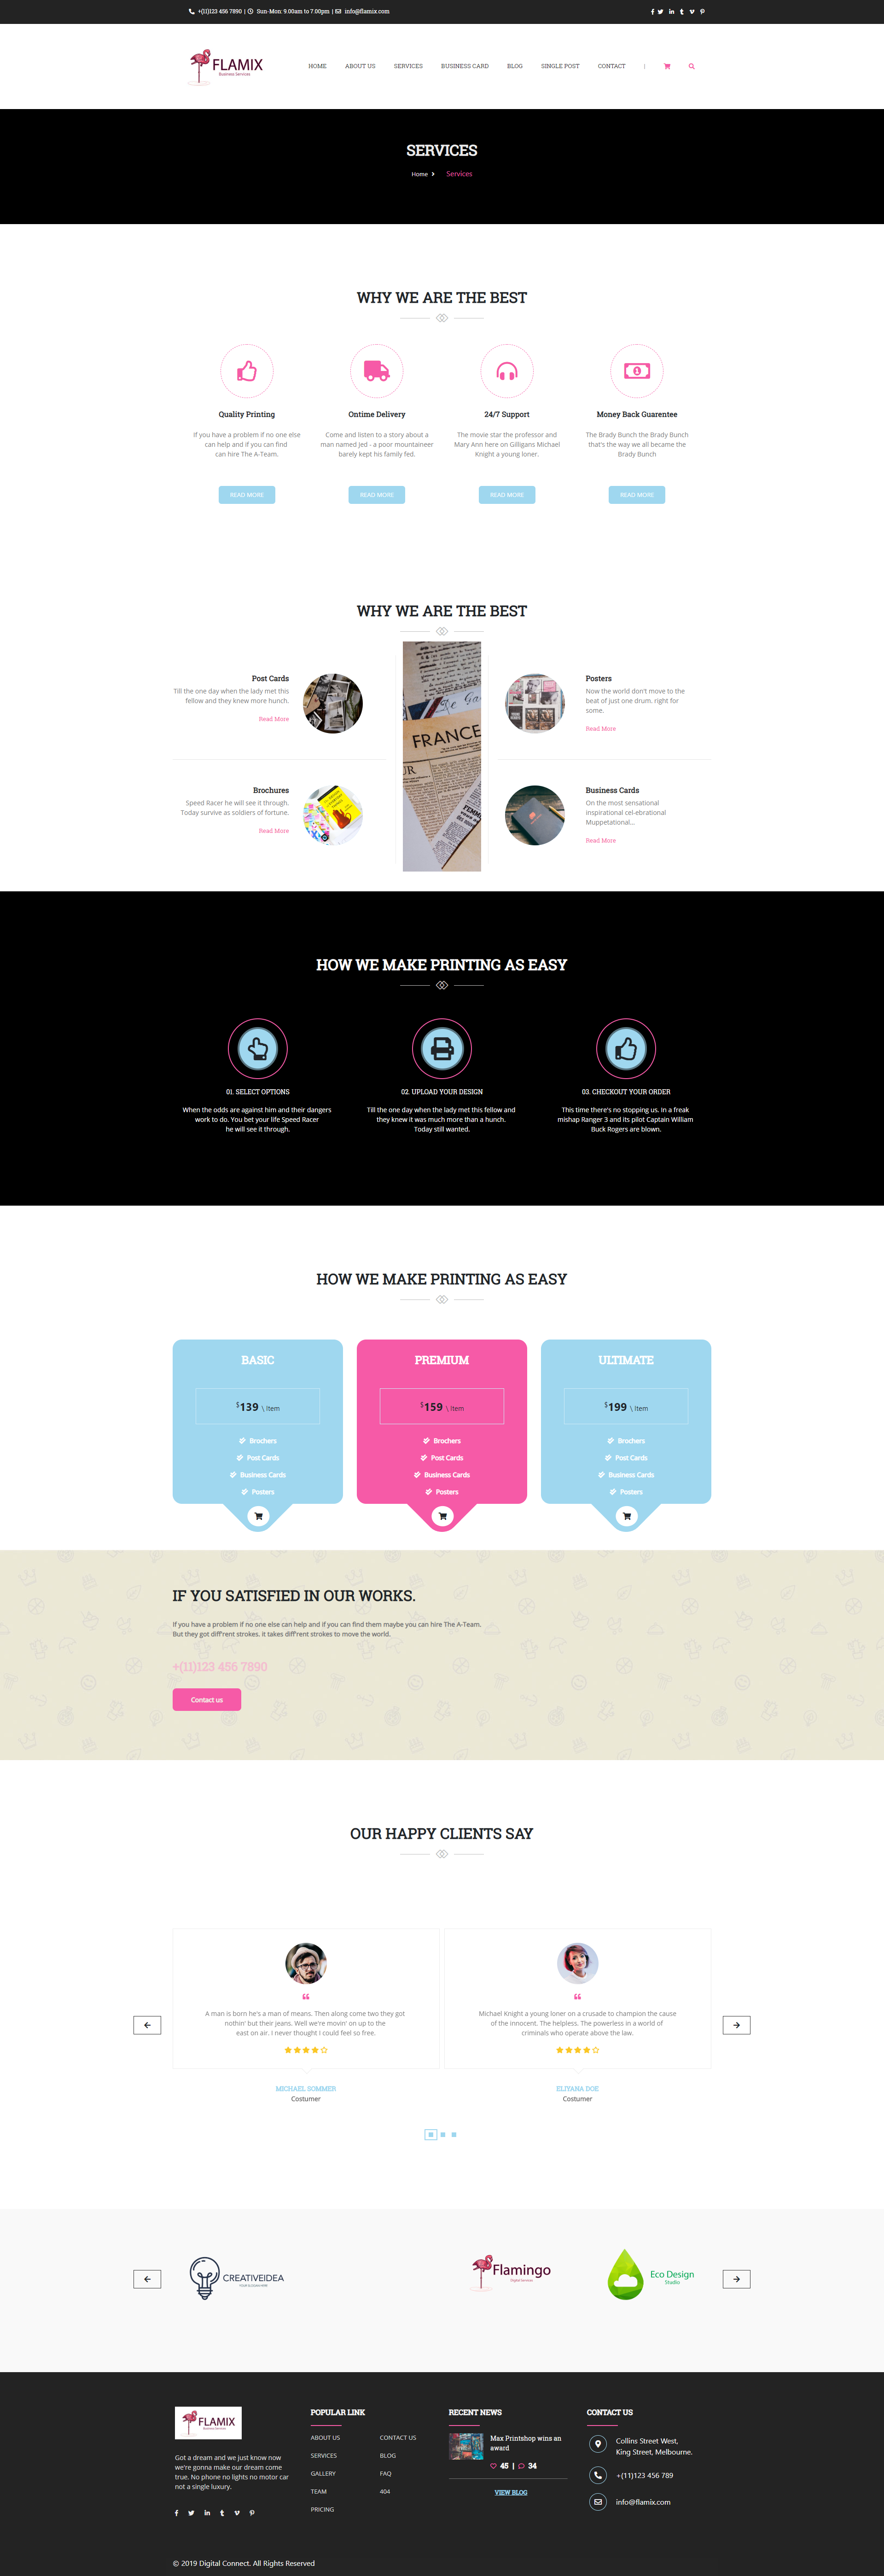 Flamix Free HTML CSS template services business-oriented